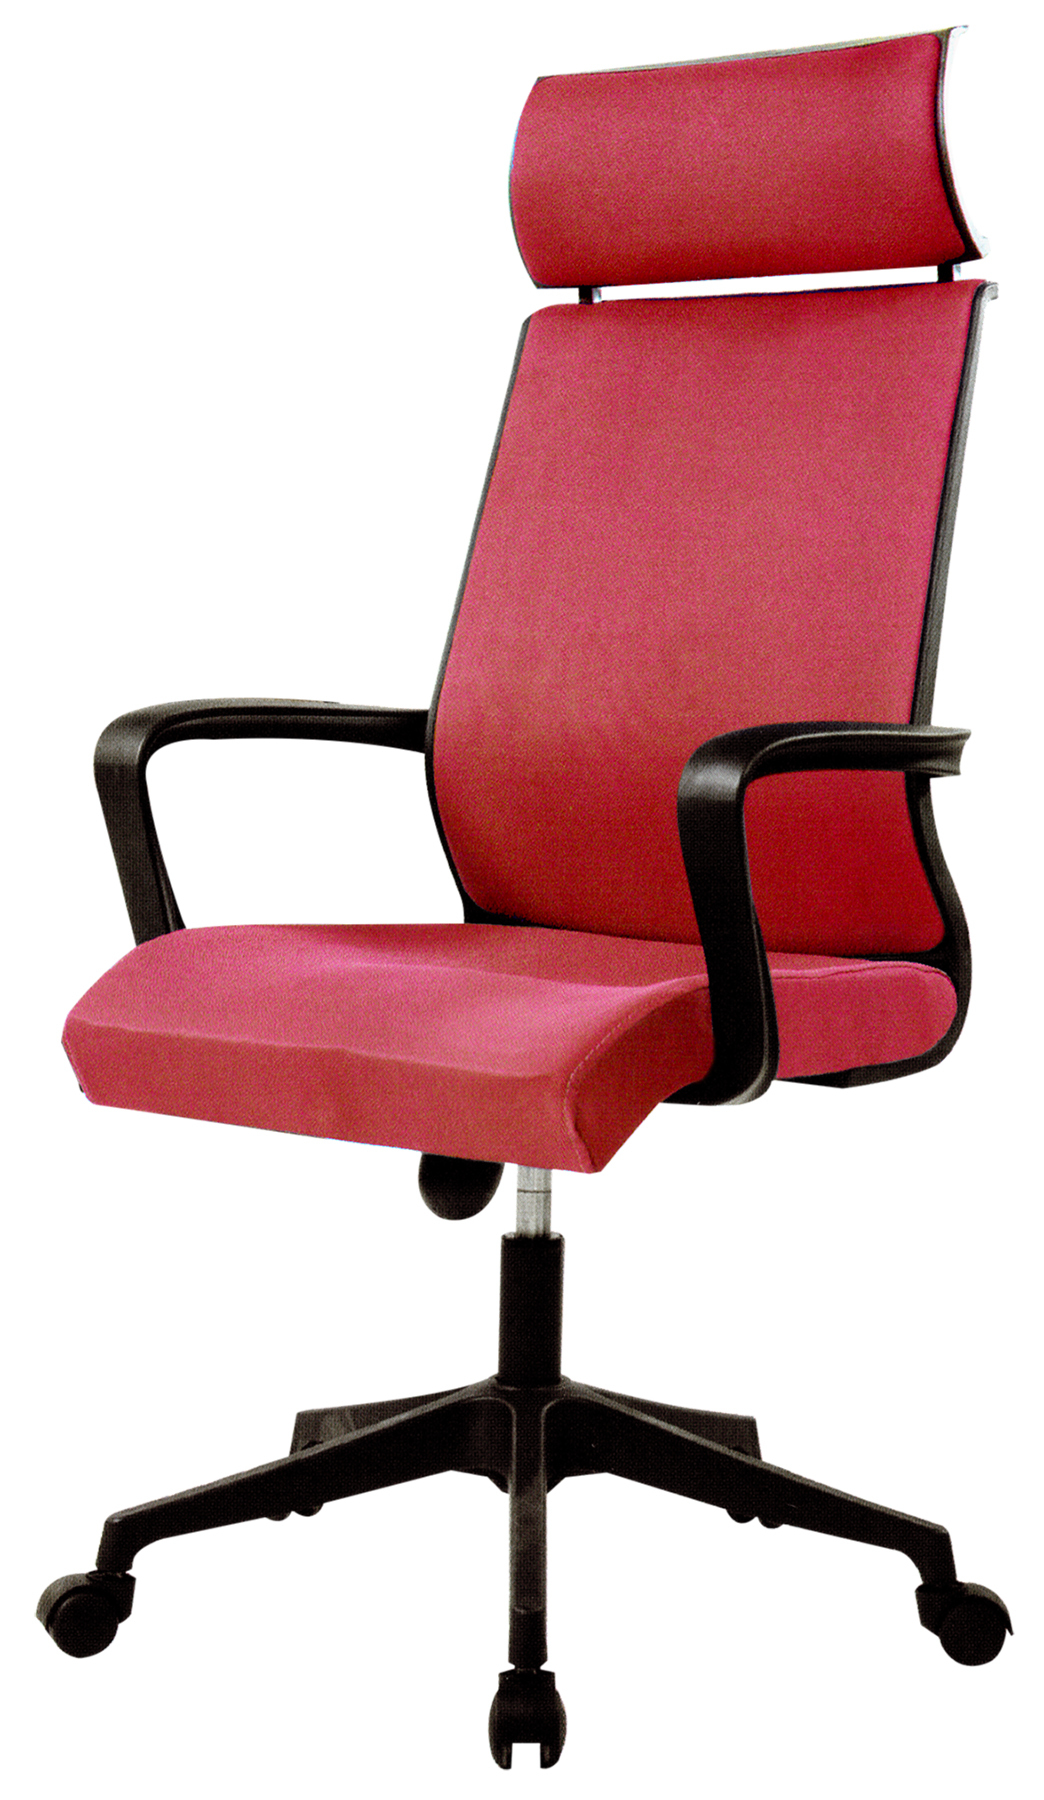 office chair 1601 red.jpg